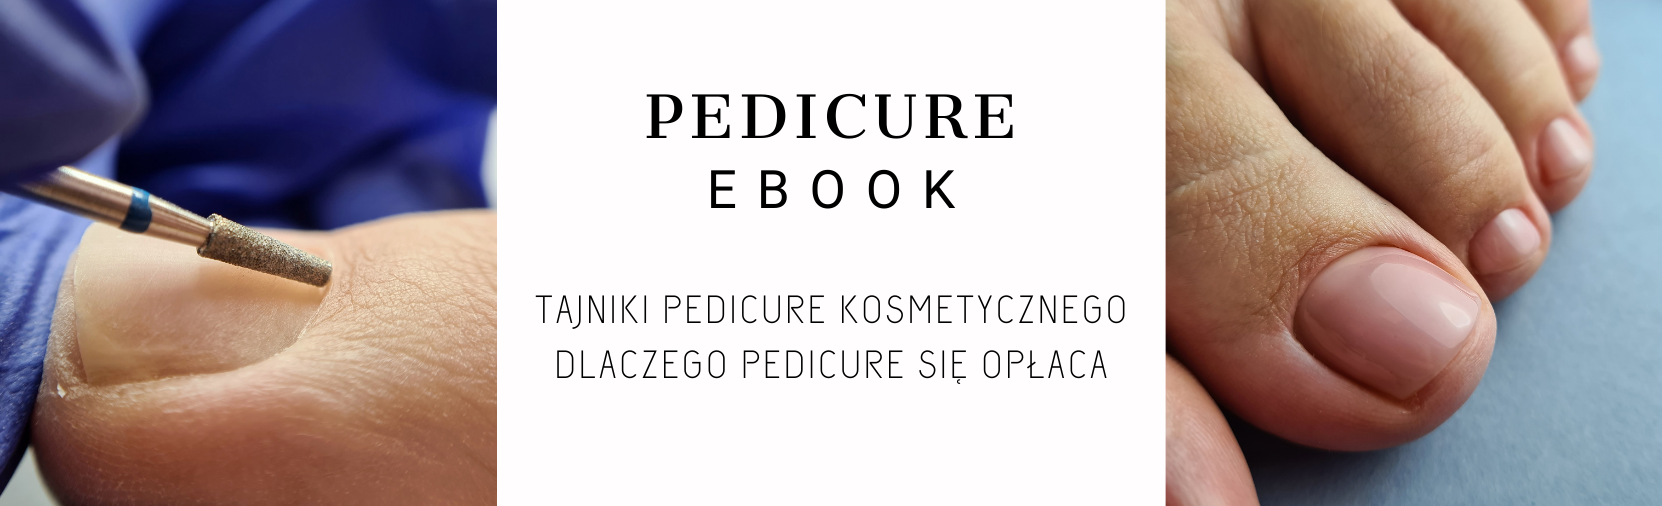 PEDICURE EBOOK